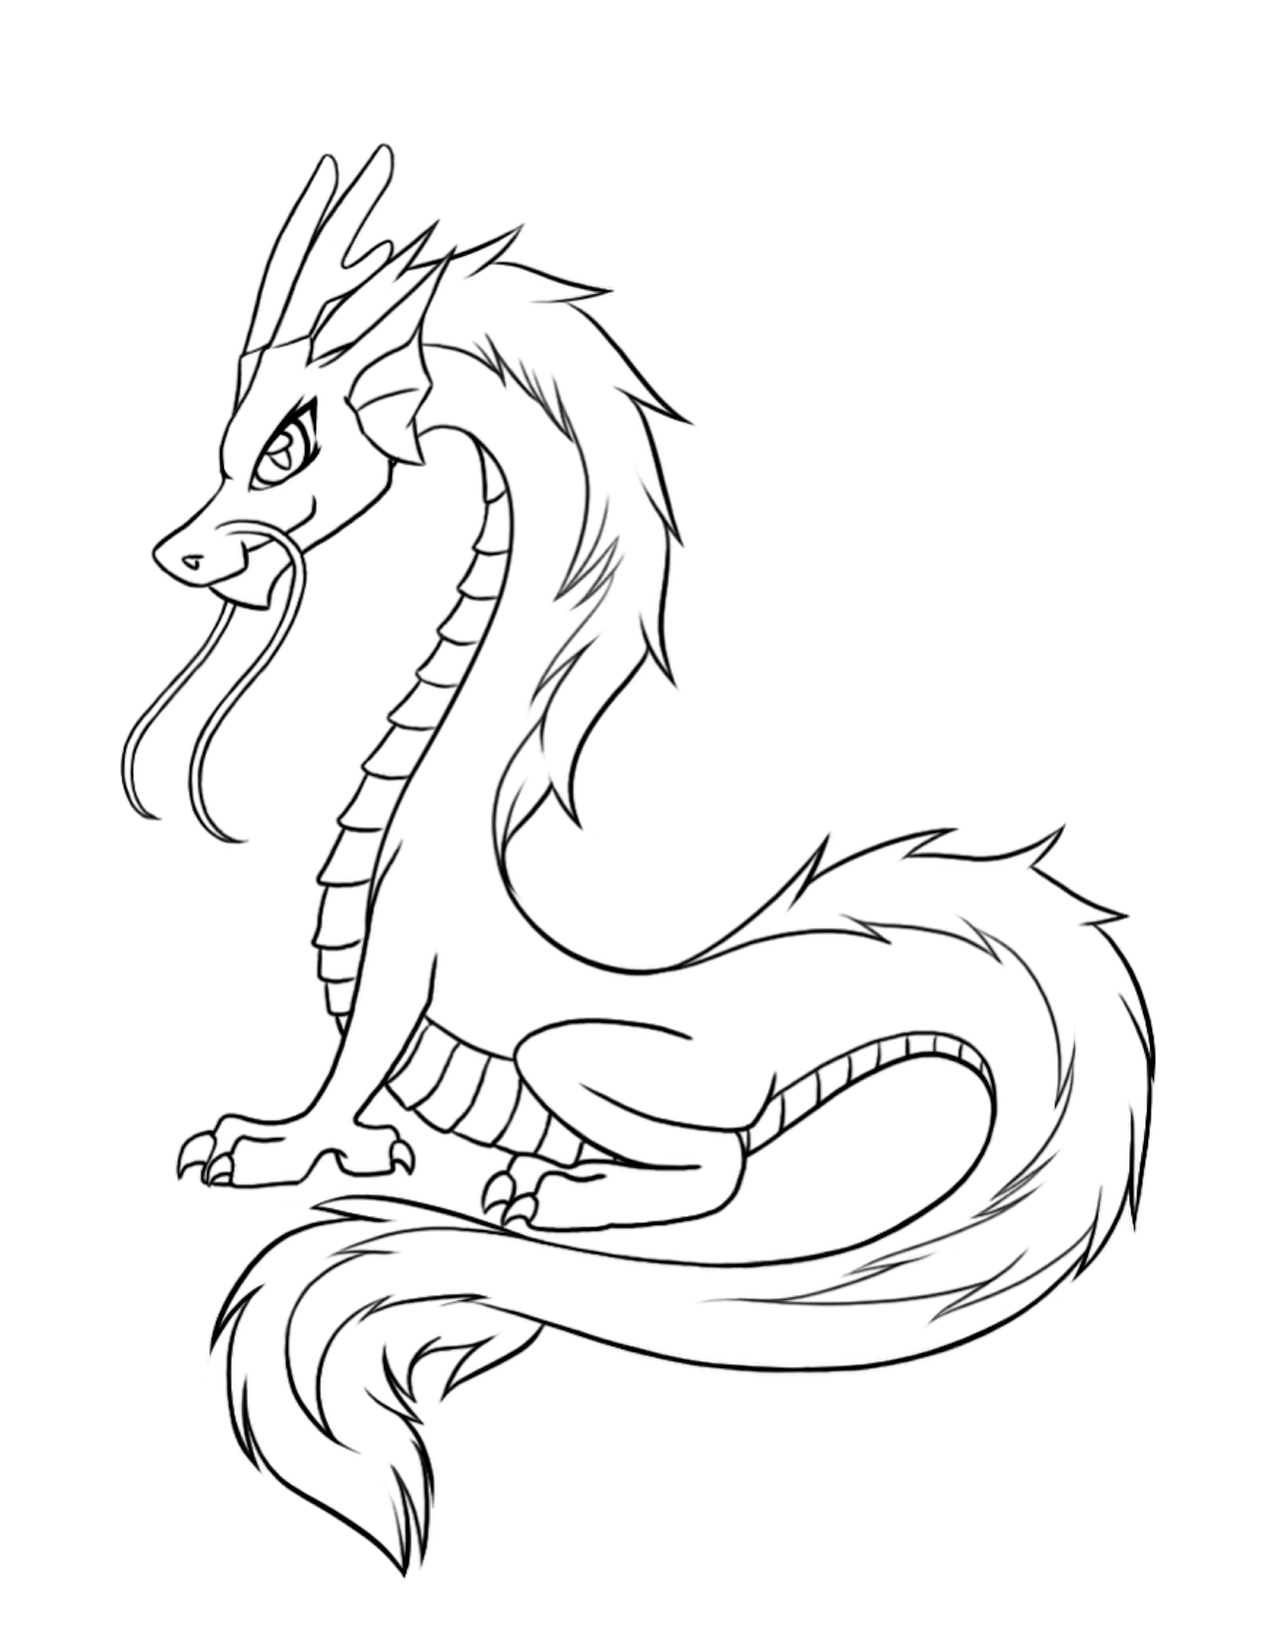 coloring cartoon dragons cartoon dragon coloring pages download and print for free coloring dragons cartoon